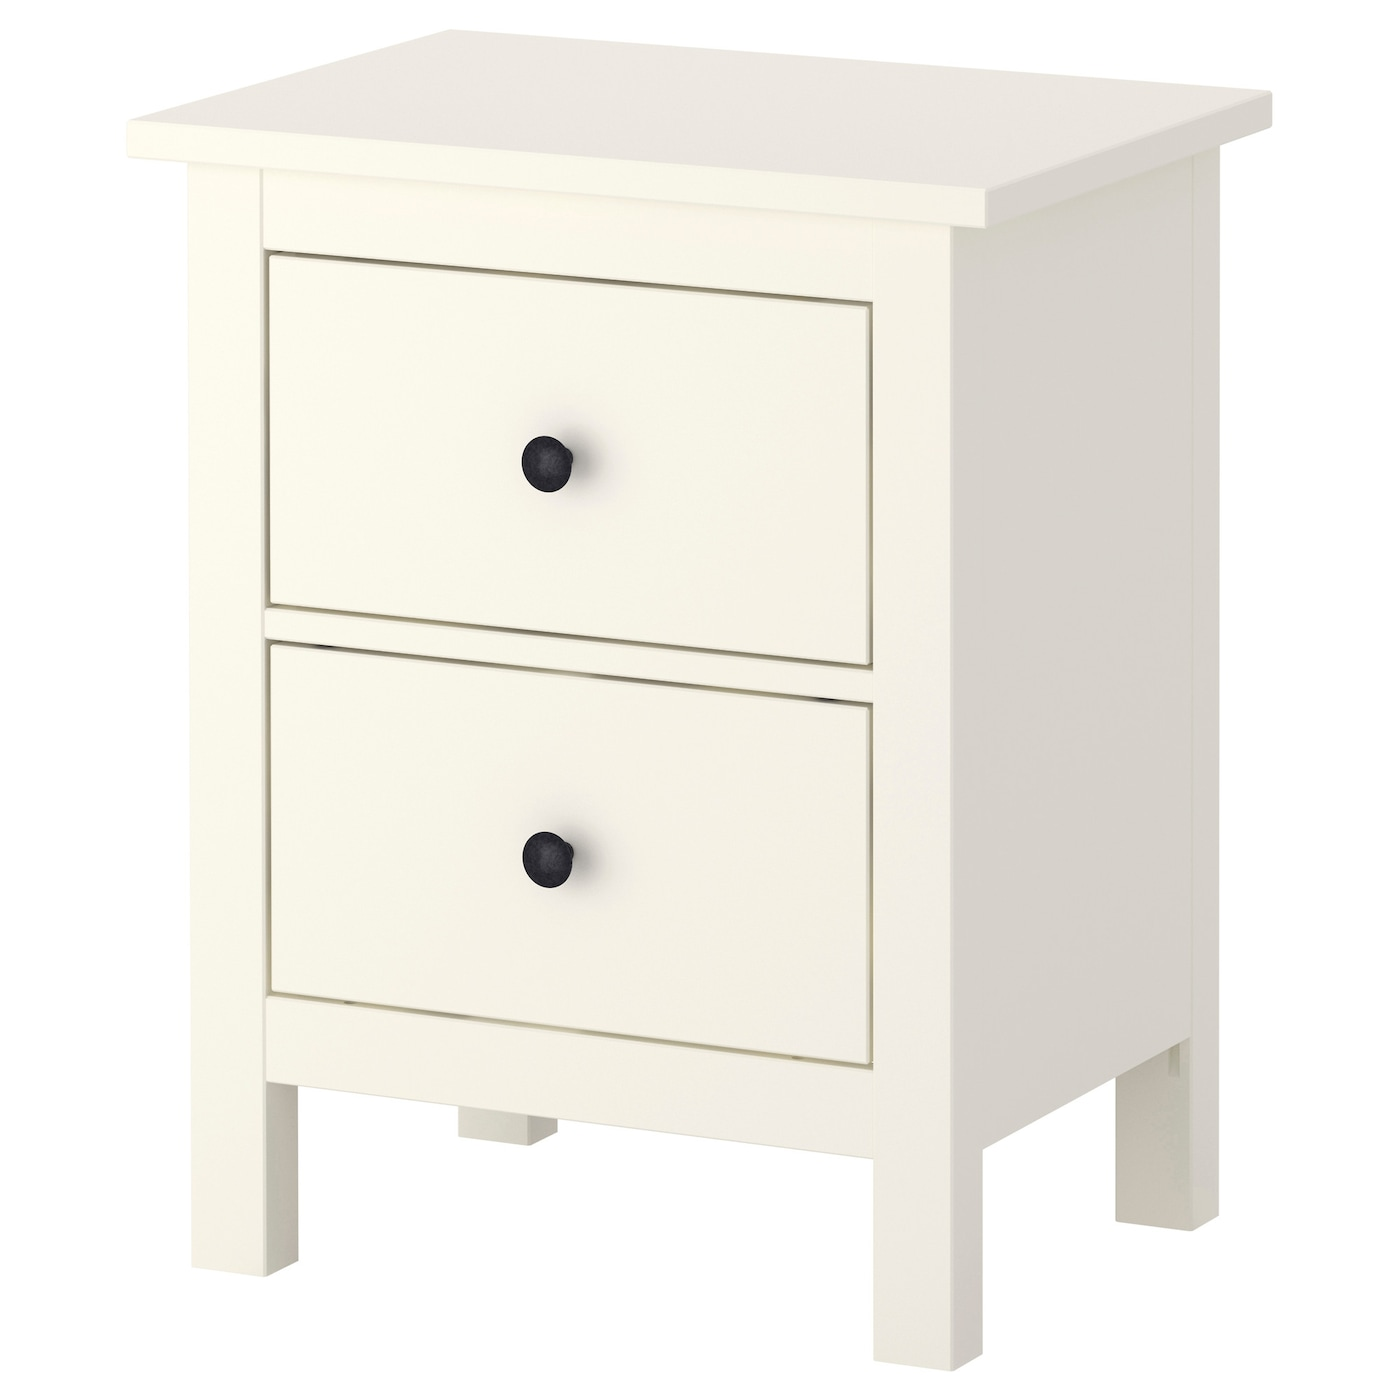 hemnes chest of 2 drawers white 54x66 cm ikea. Black Bedroom Furniture Sets. Home Design Ideas